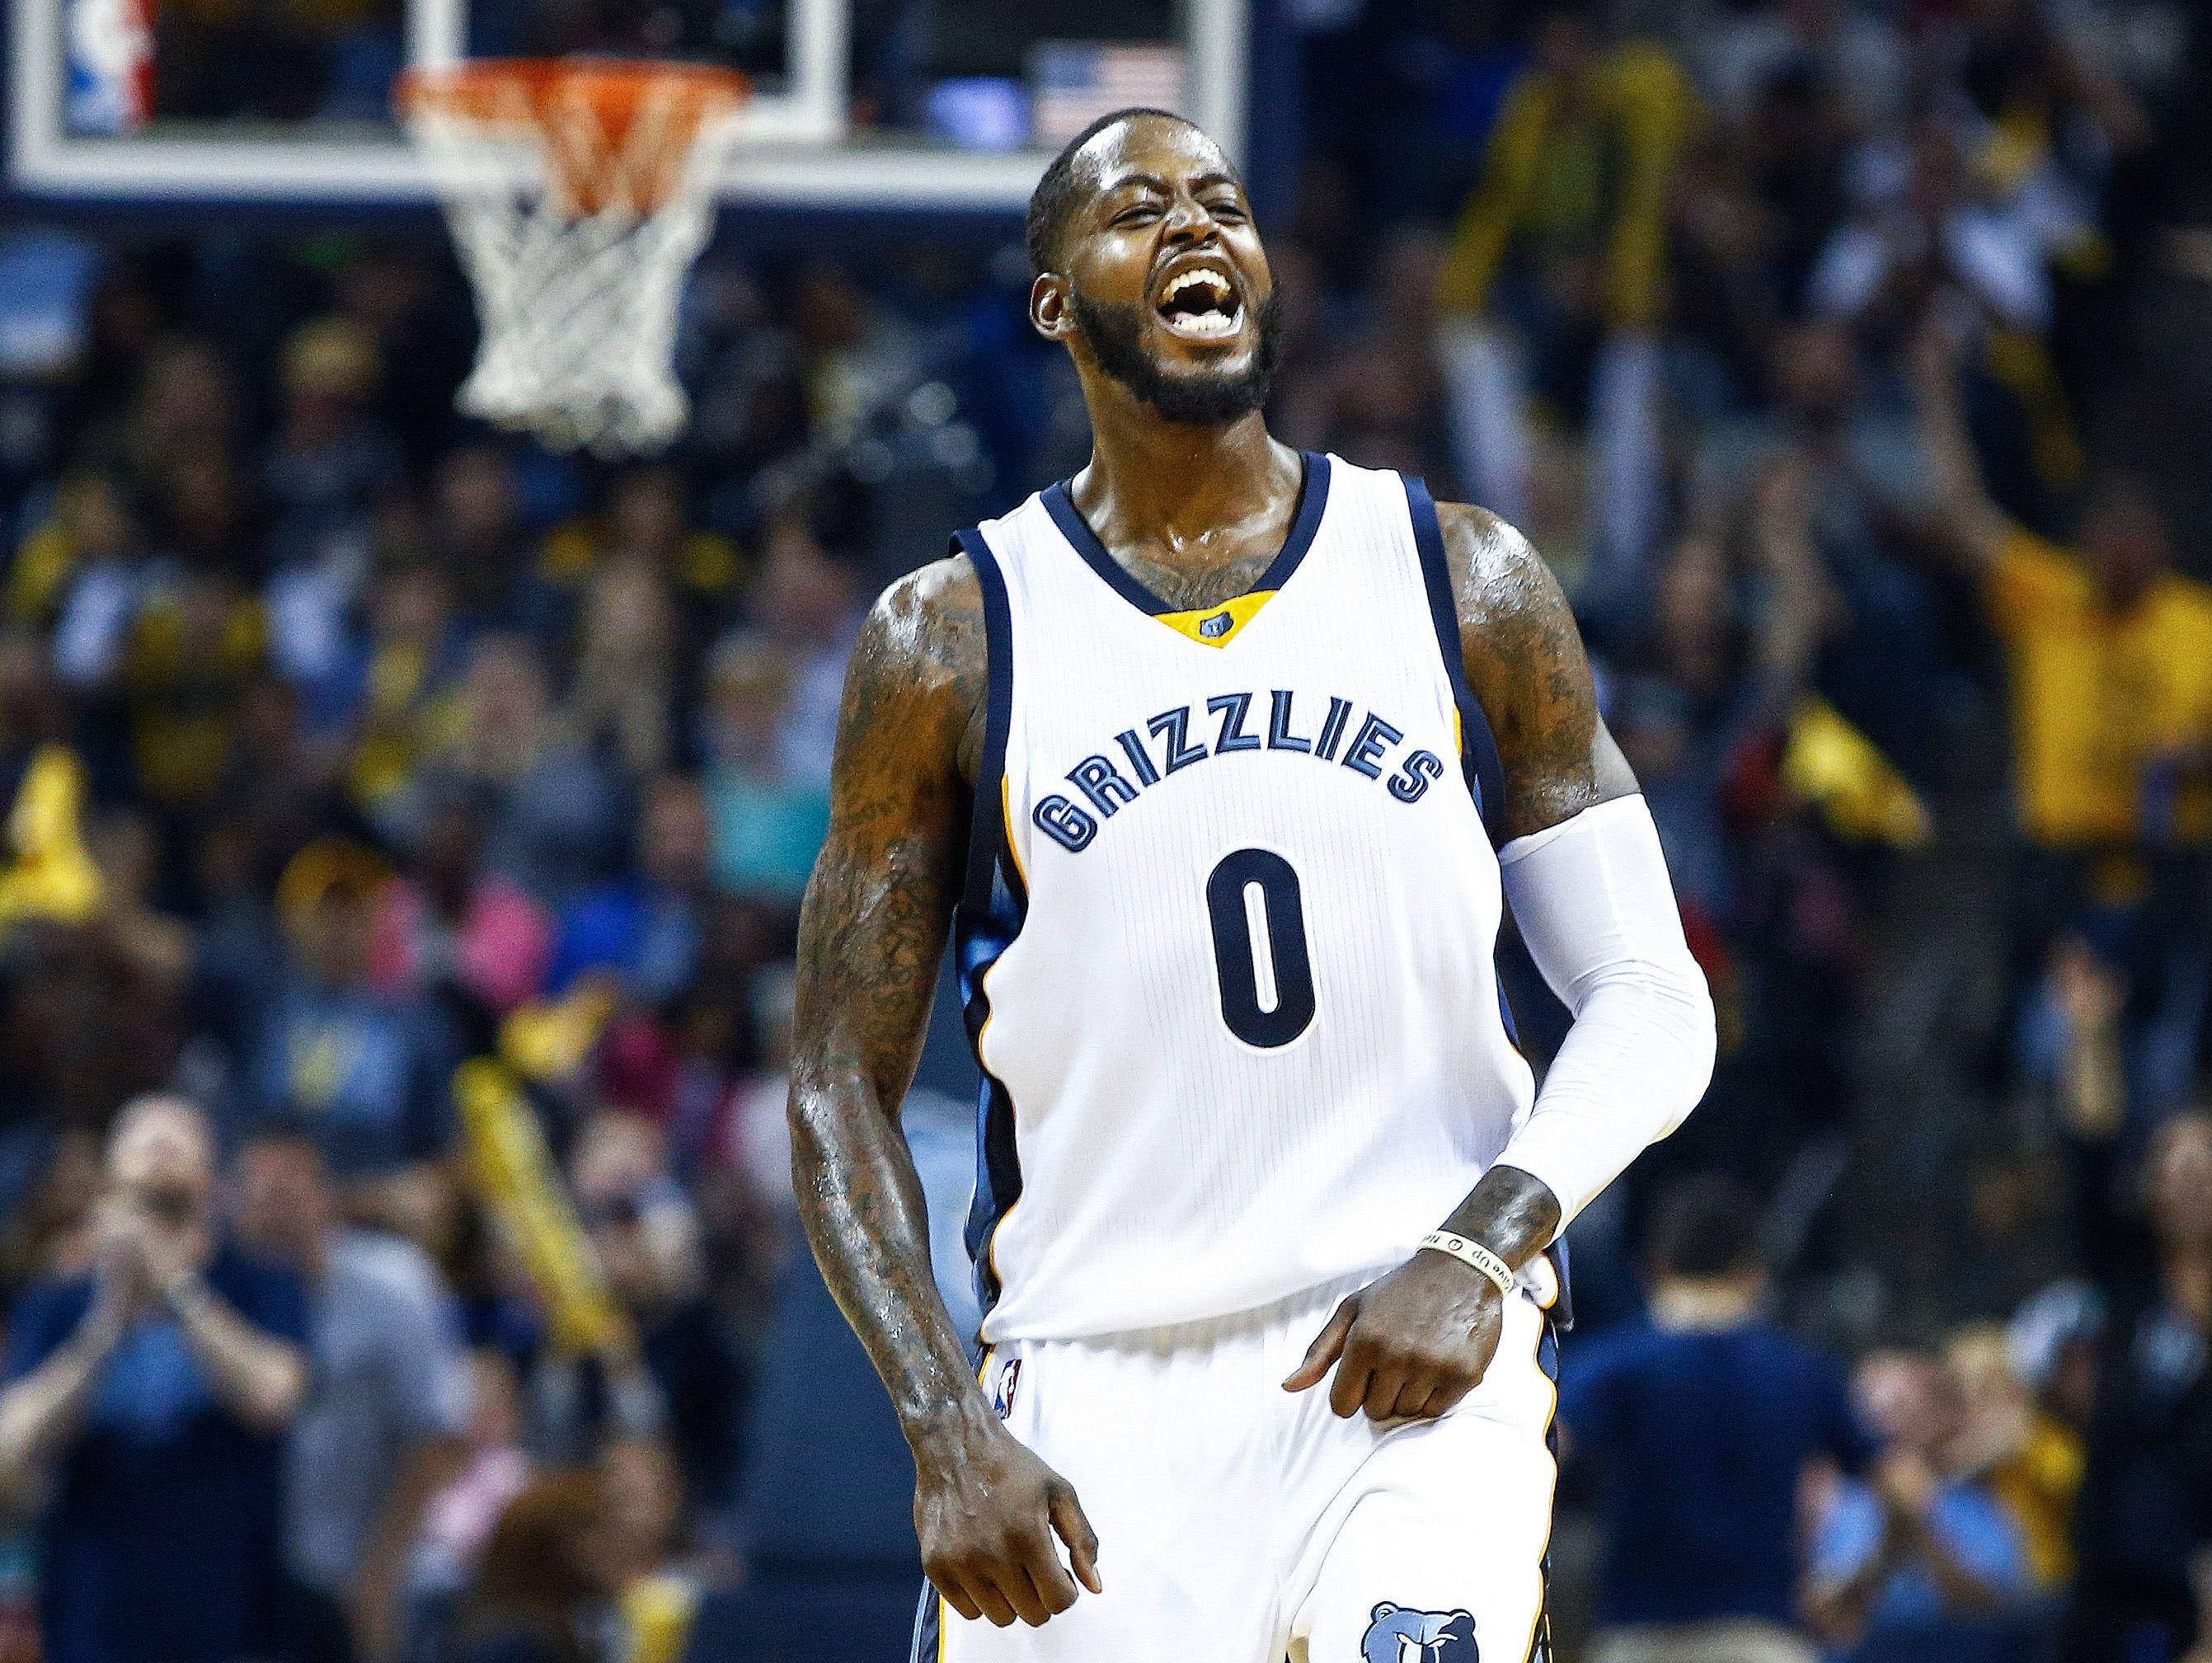 Forward JaMychal Green has until Oct. 1 to sign a qualifying offer for $2.8 million. Mark Weber / The Commercial Appeal Forward JaMychal Green has until Oct. 1 to sign a qualifying offer for $2.8 million.